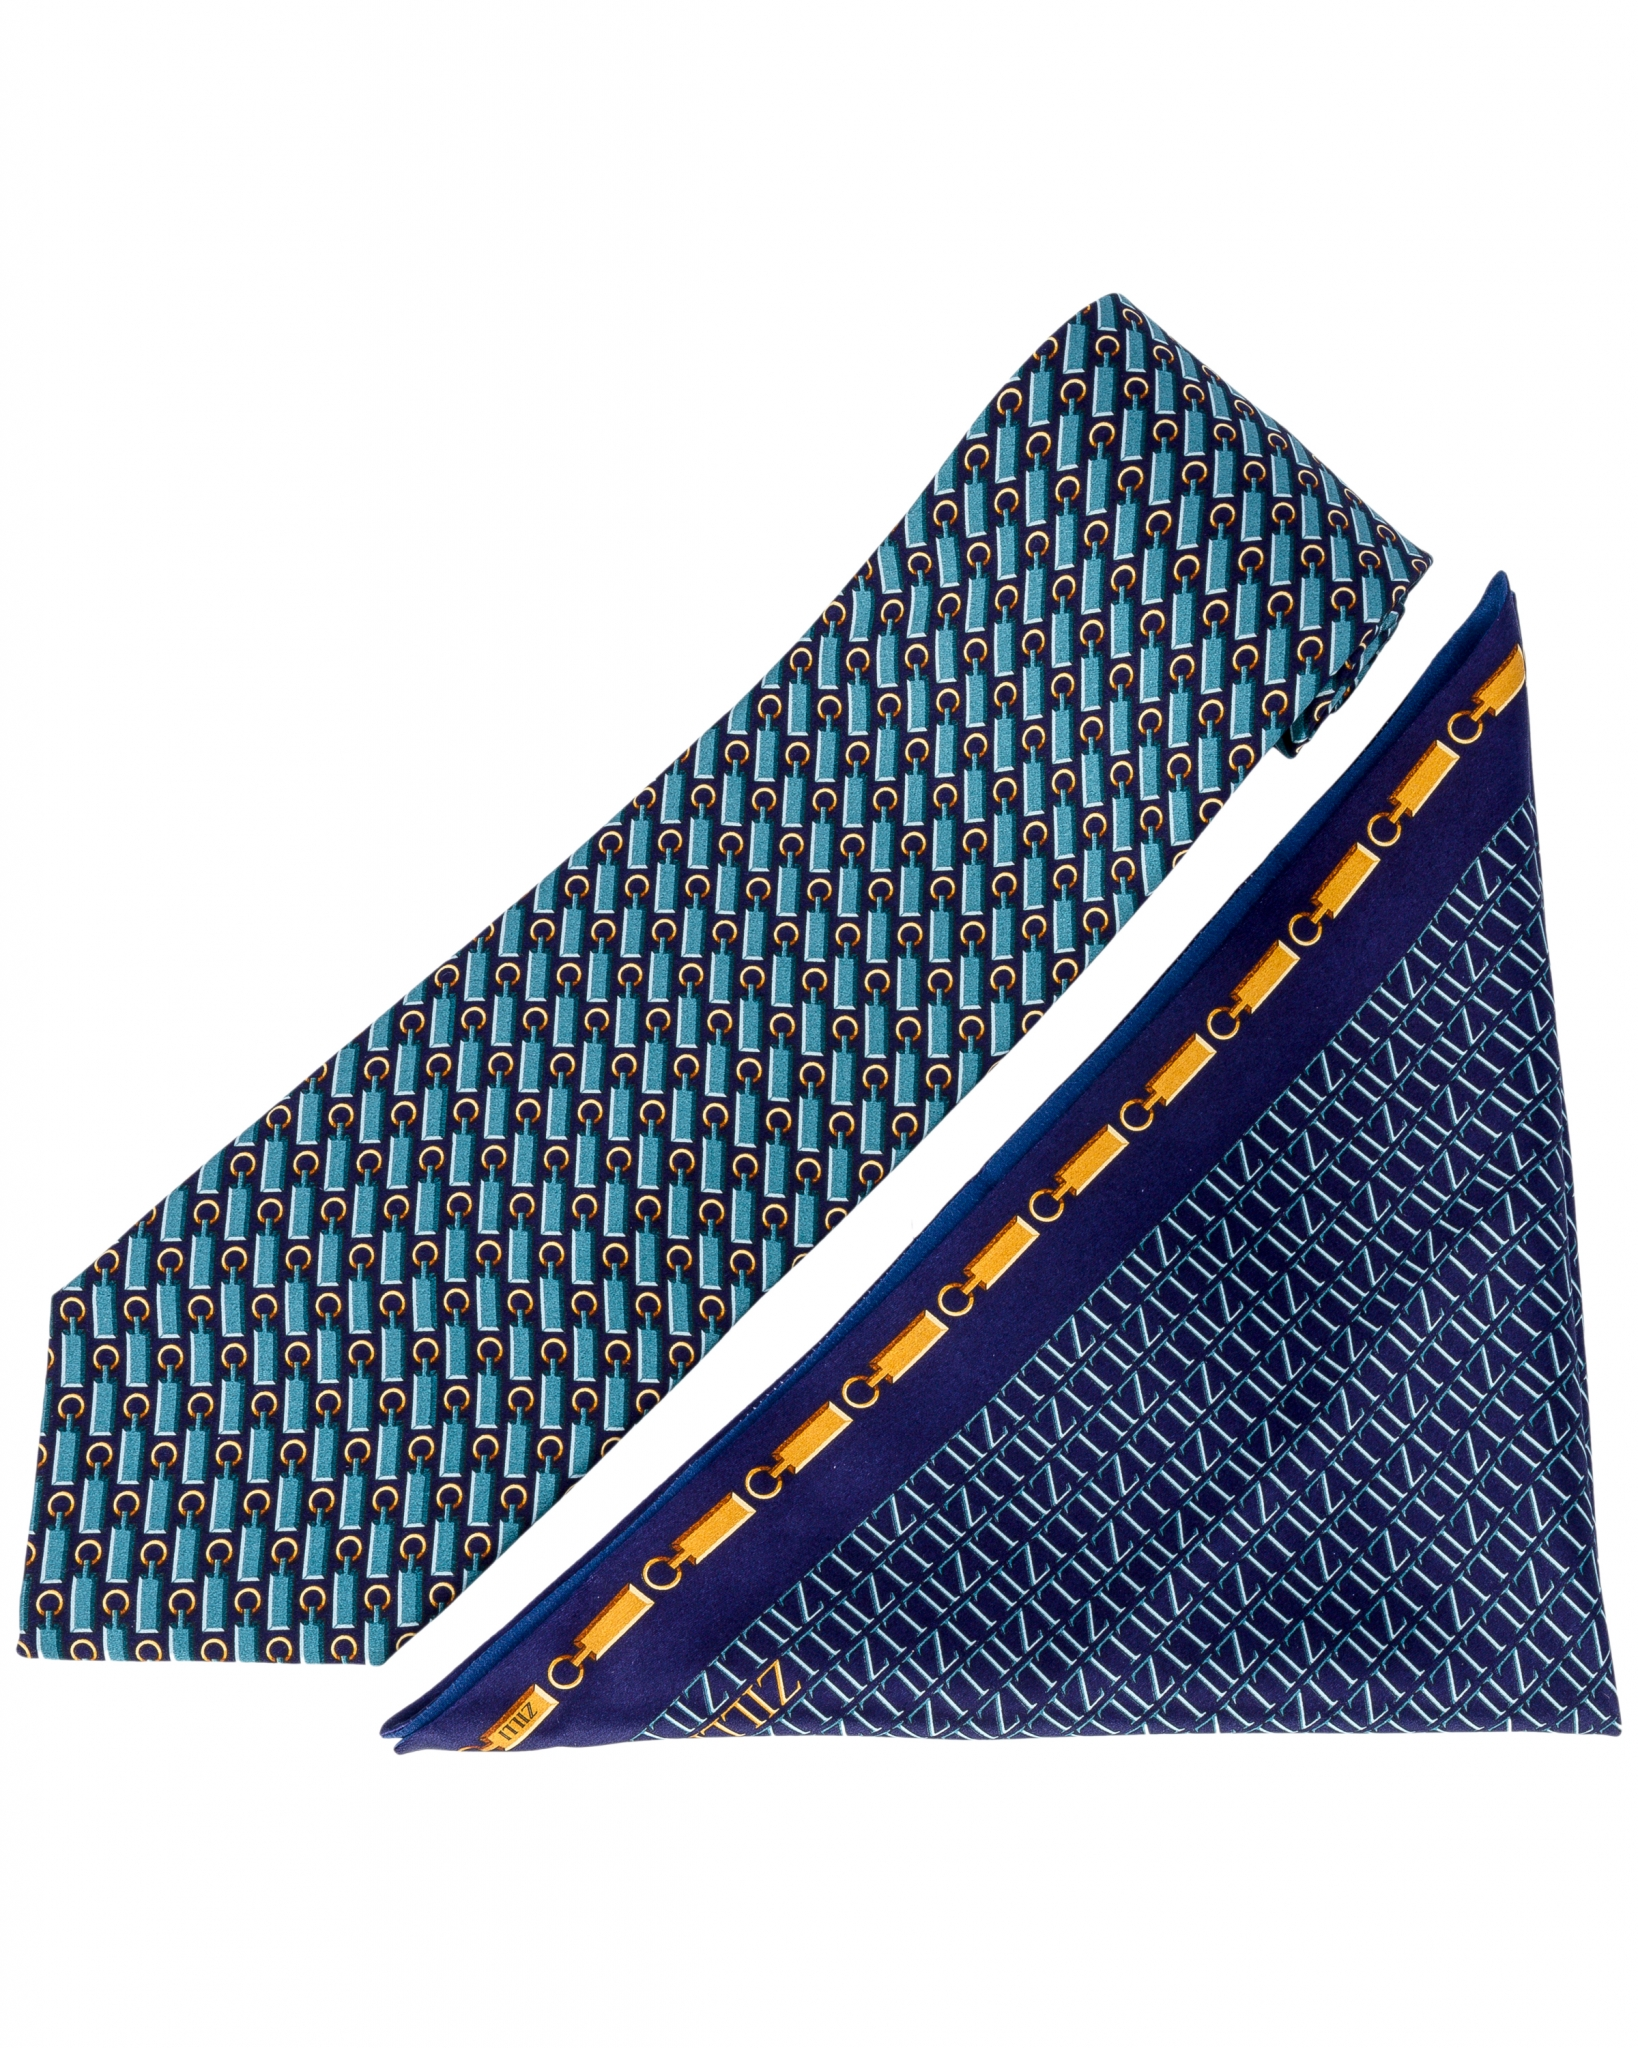 ZILLI – 100% Silk Tie & Pocket Square Set Navy Blue|Yellow 4574V10